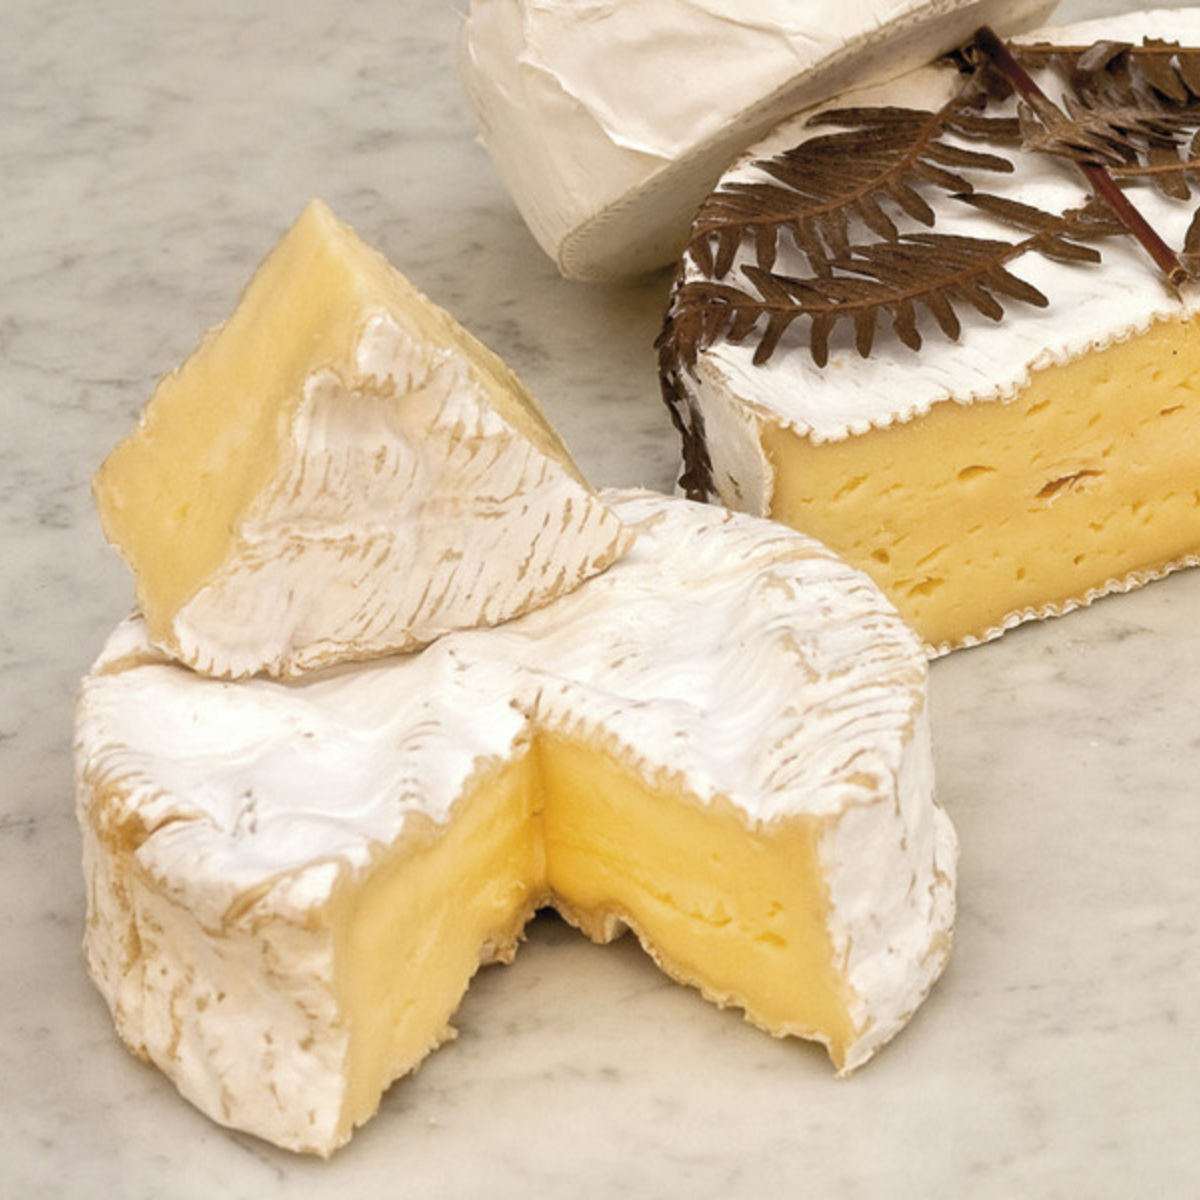 The picture shows several kinds of soft cheese.